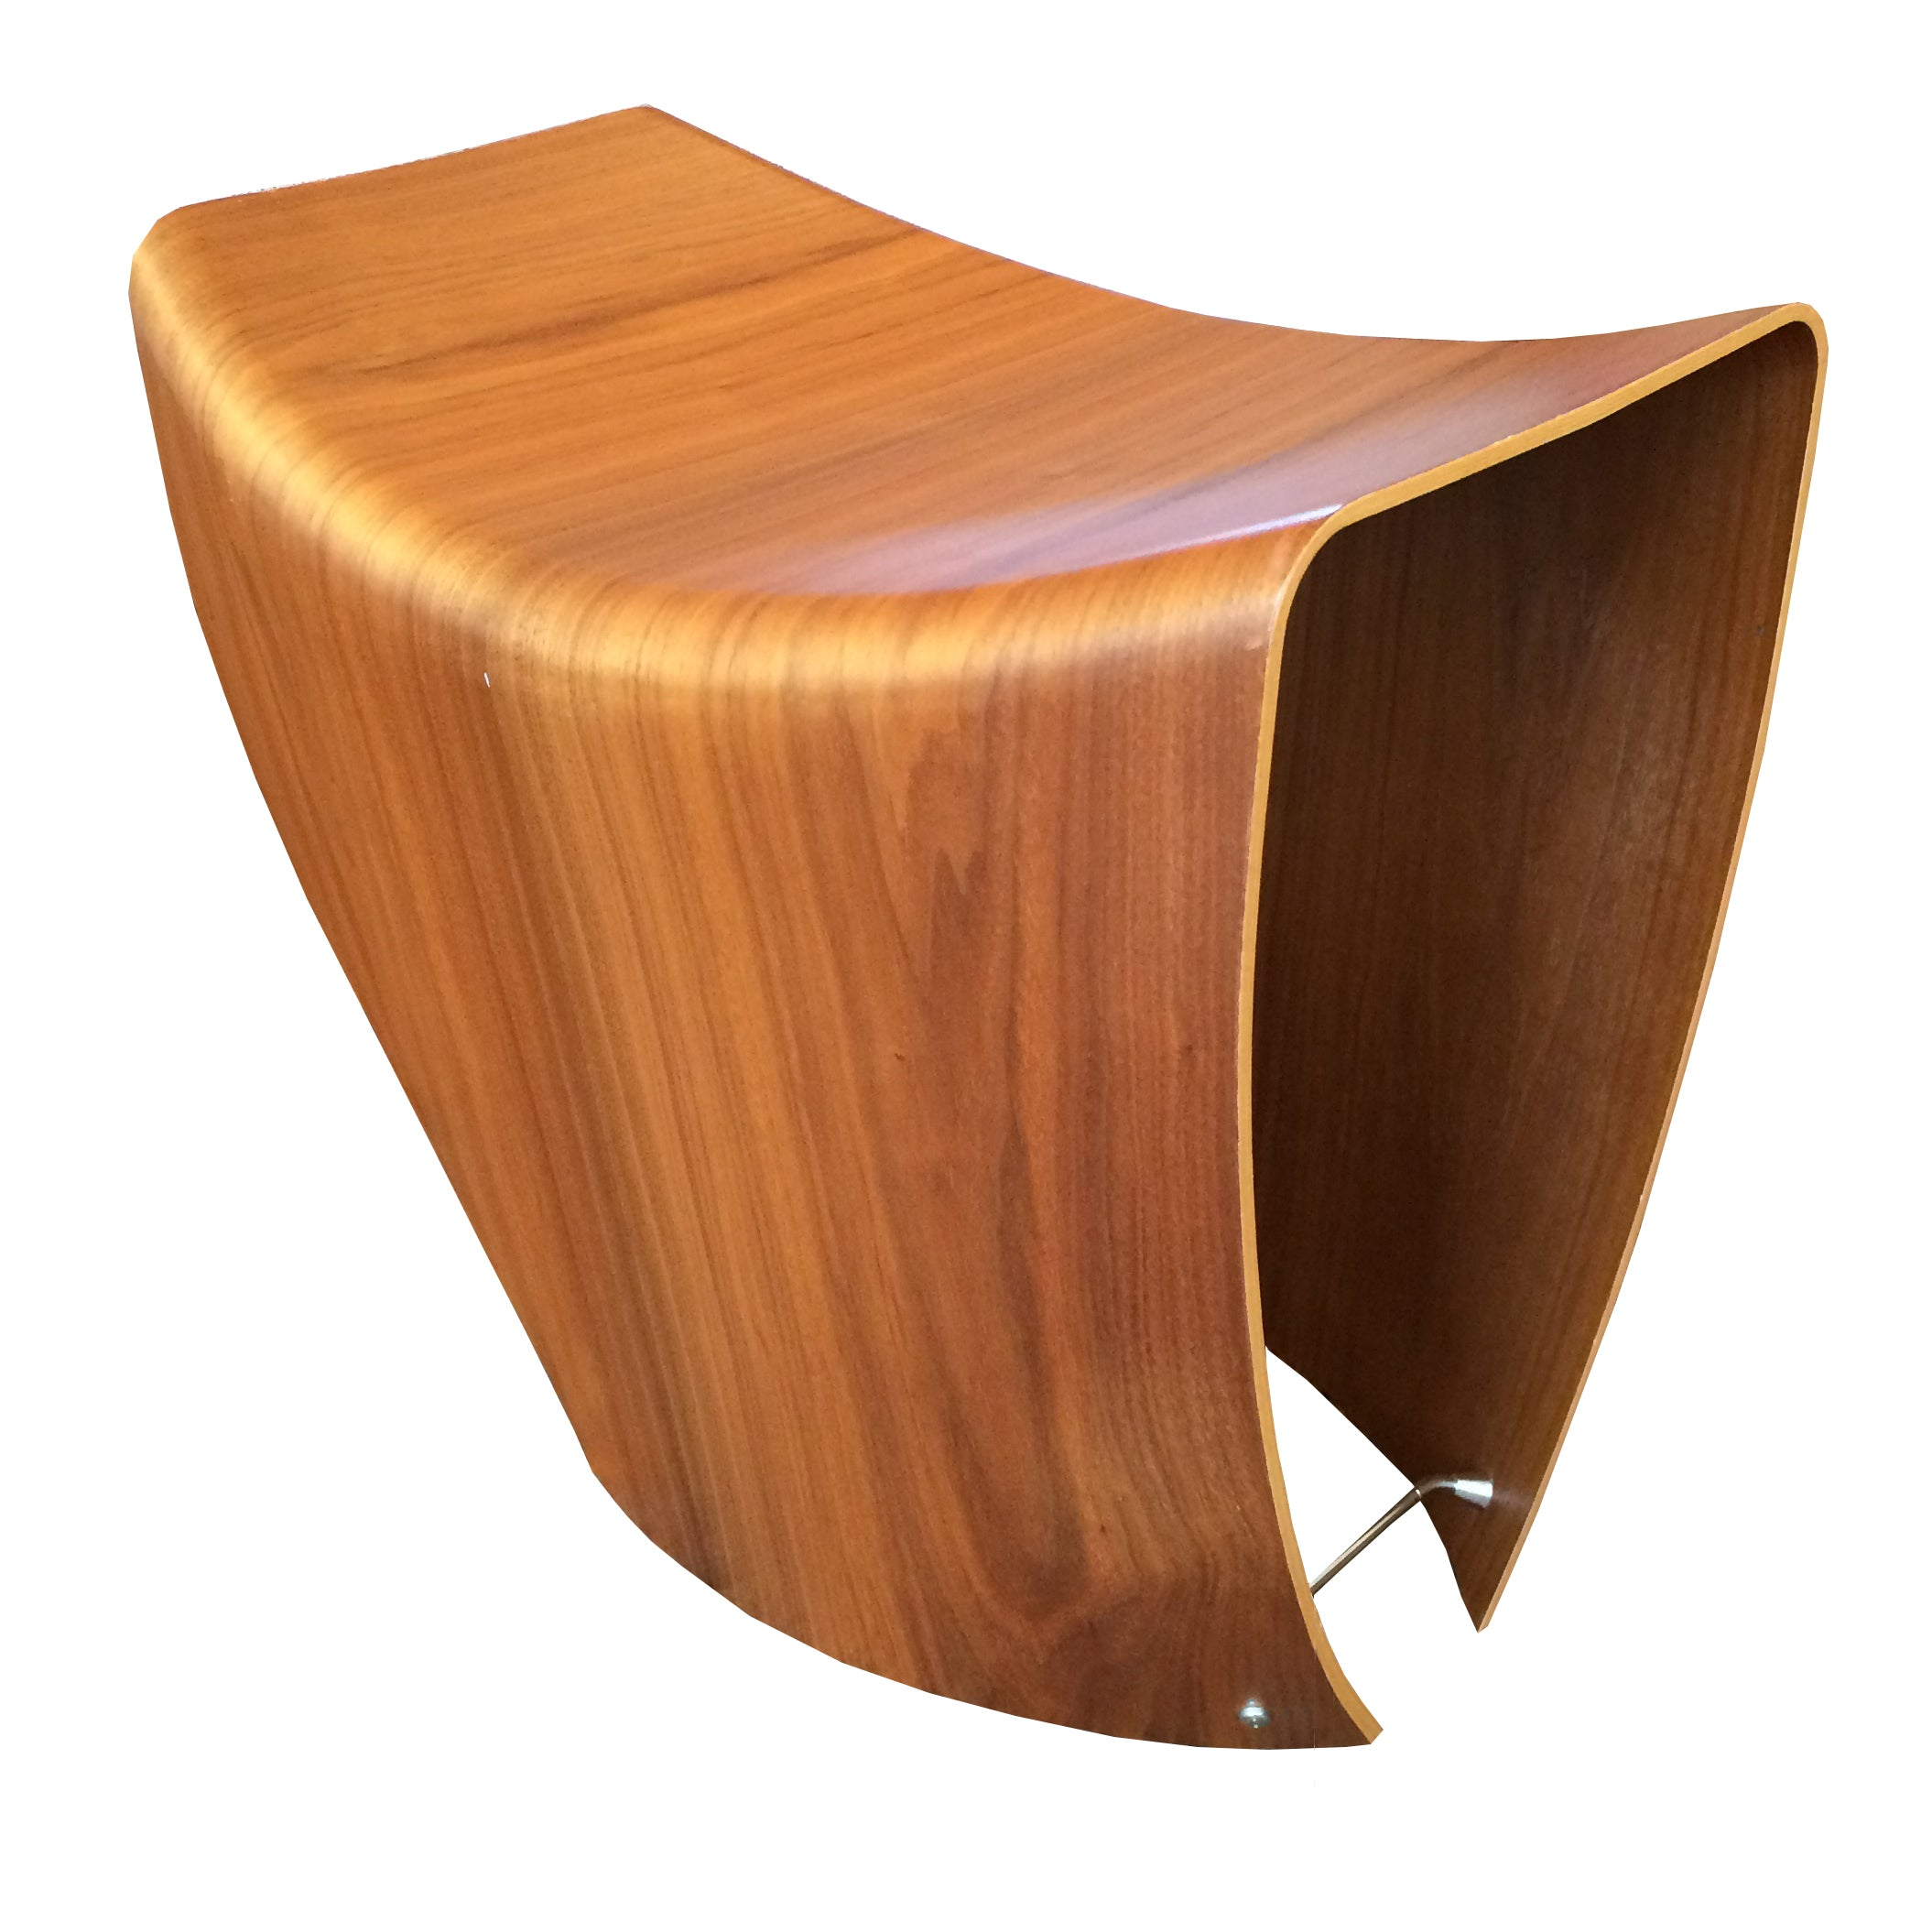 Jakobsen Gallery Stool